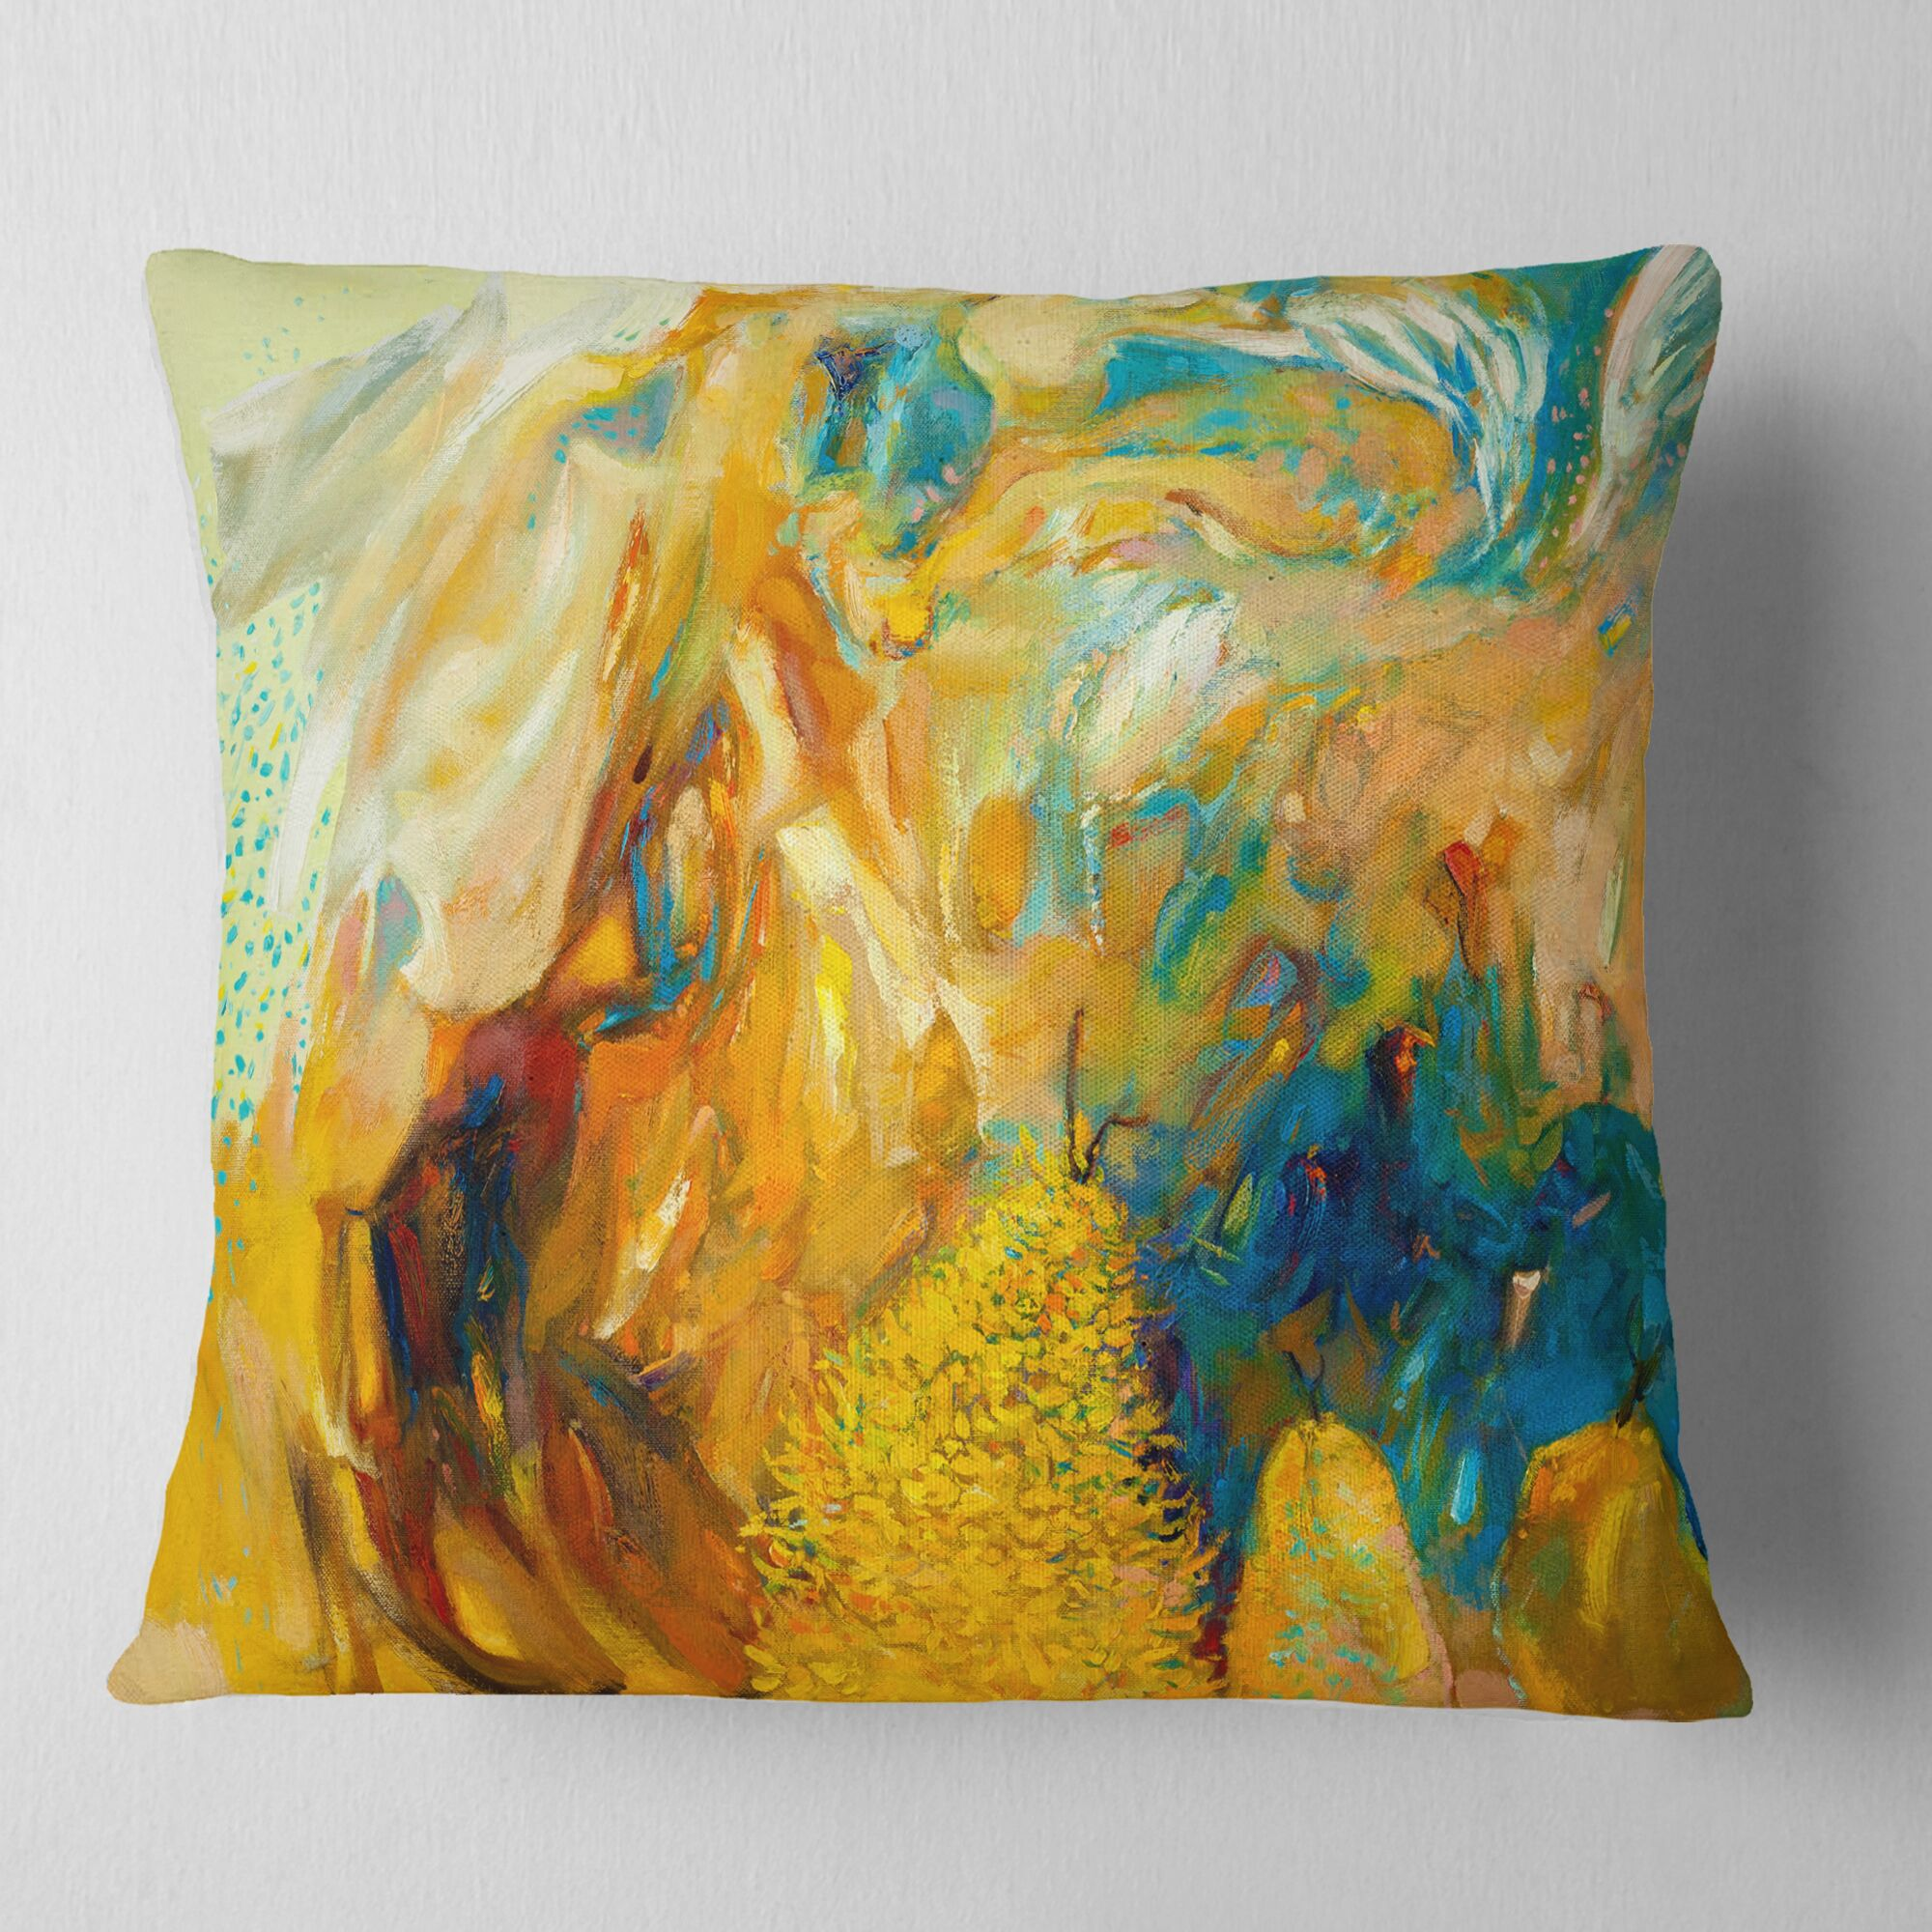 Abstract Collage Pillow Size: 16